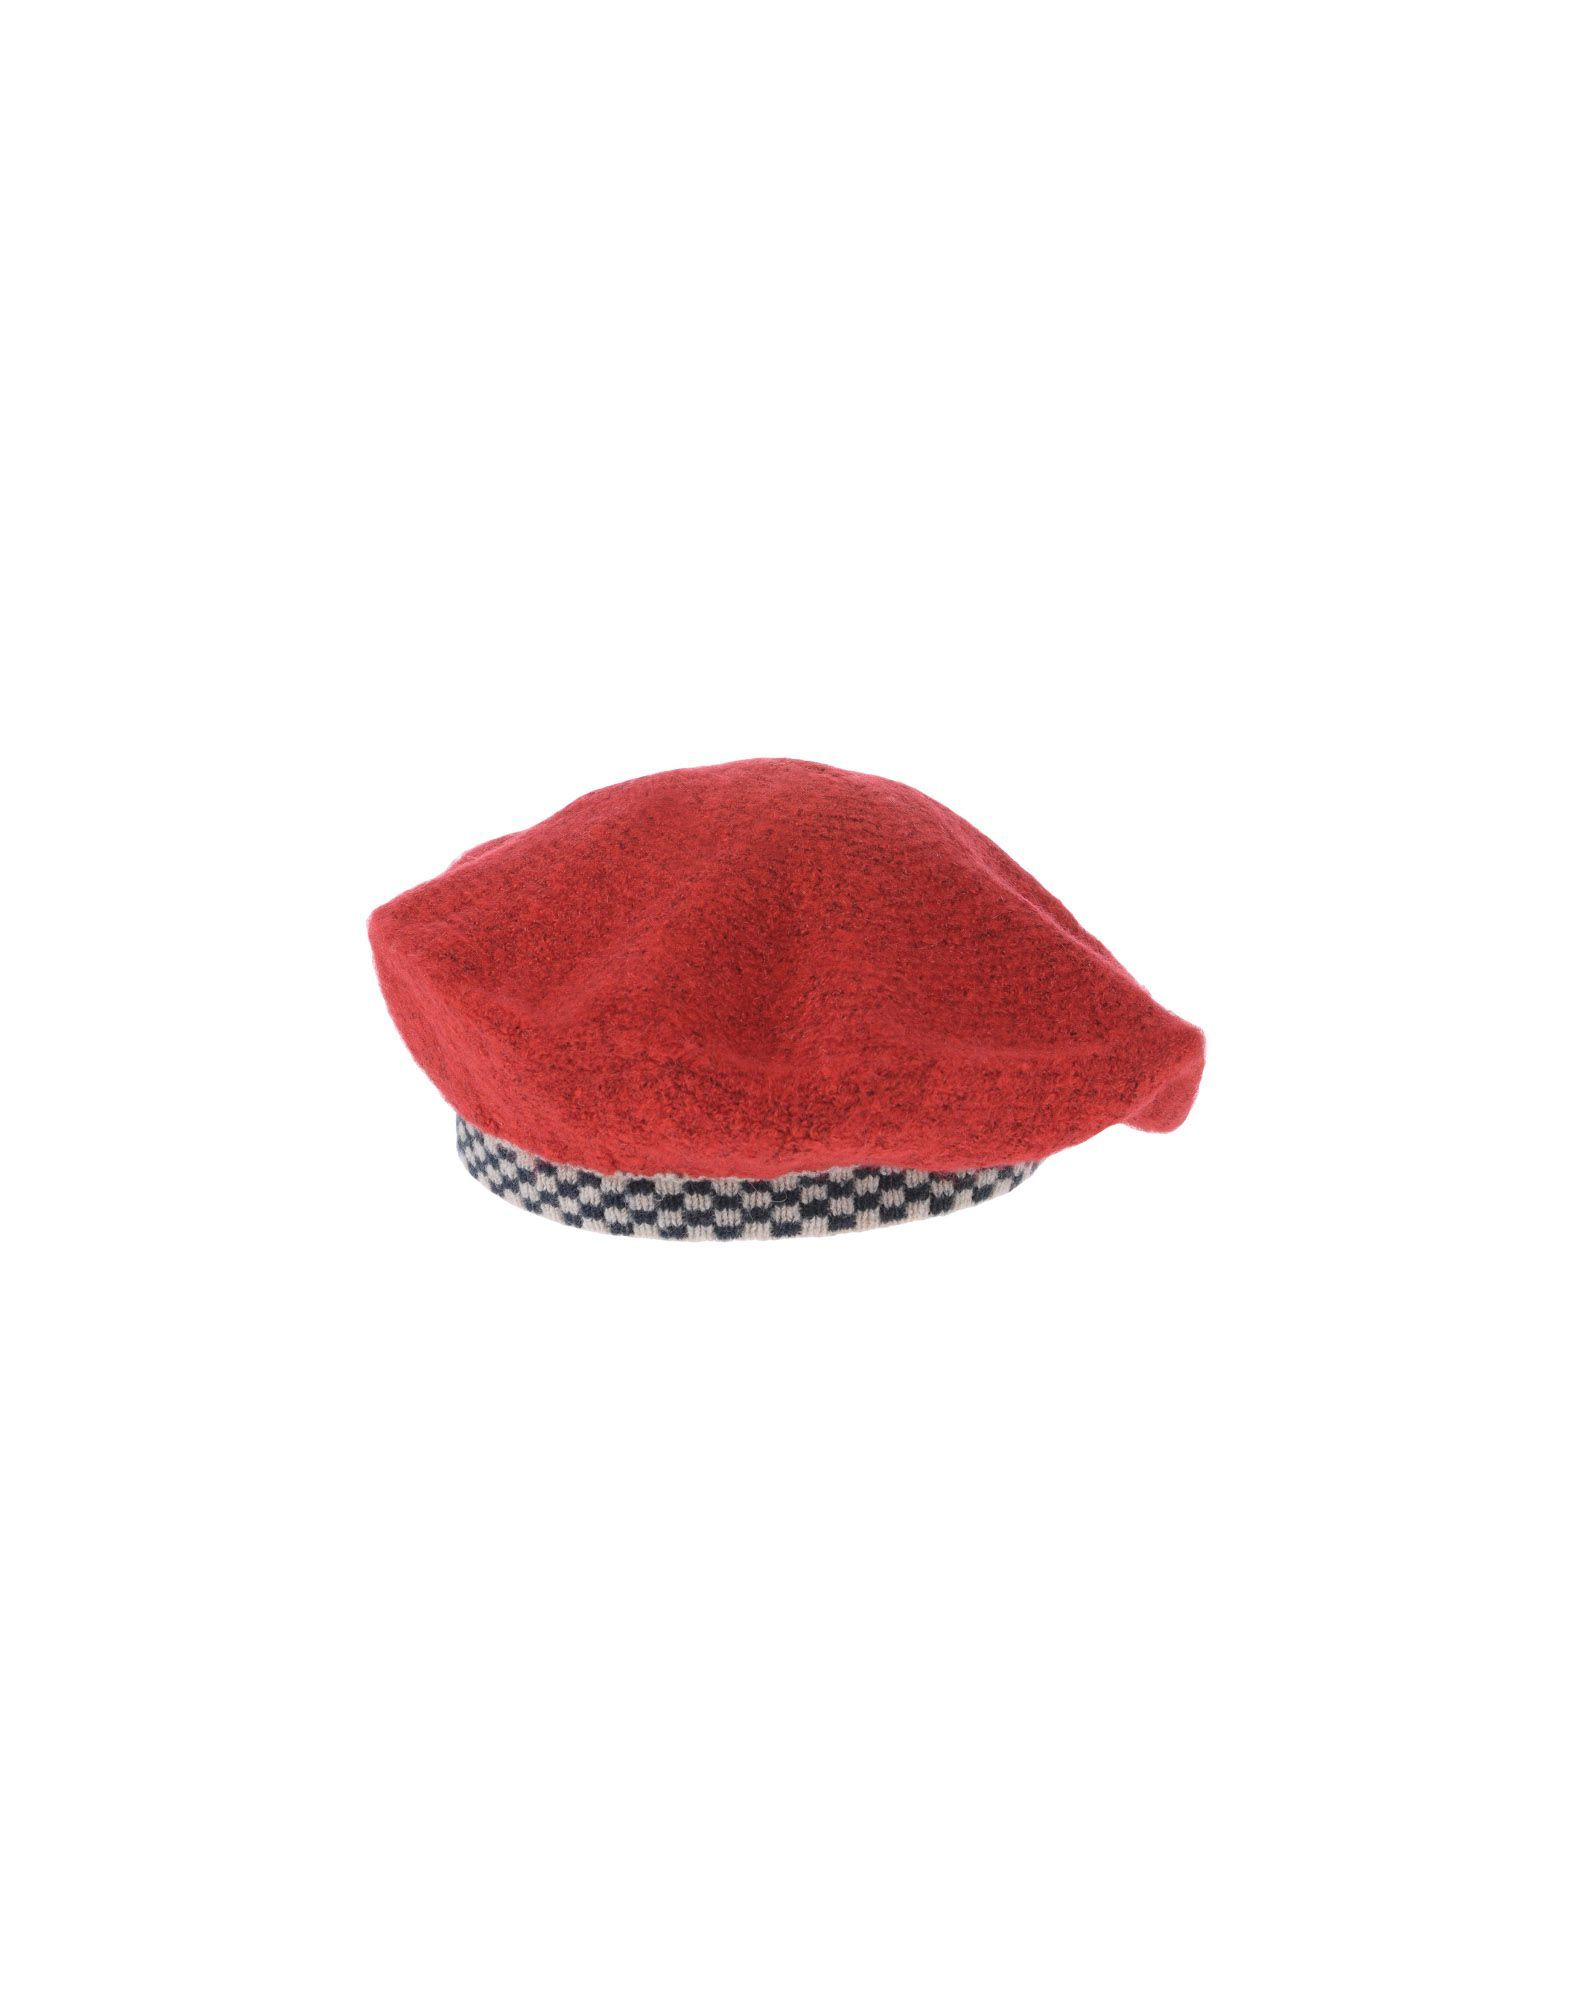 American Outfitters Red Girls' Beret